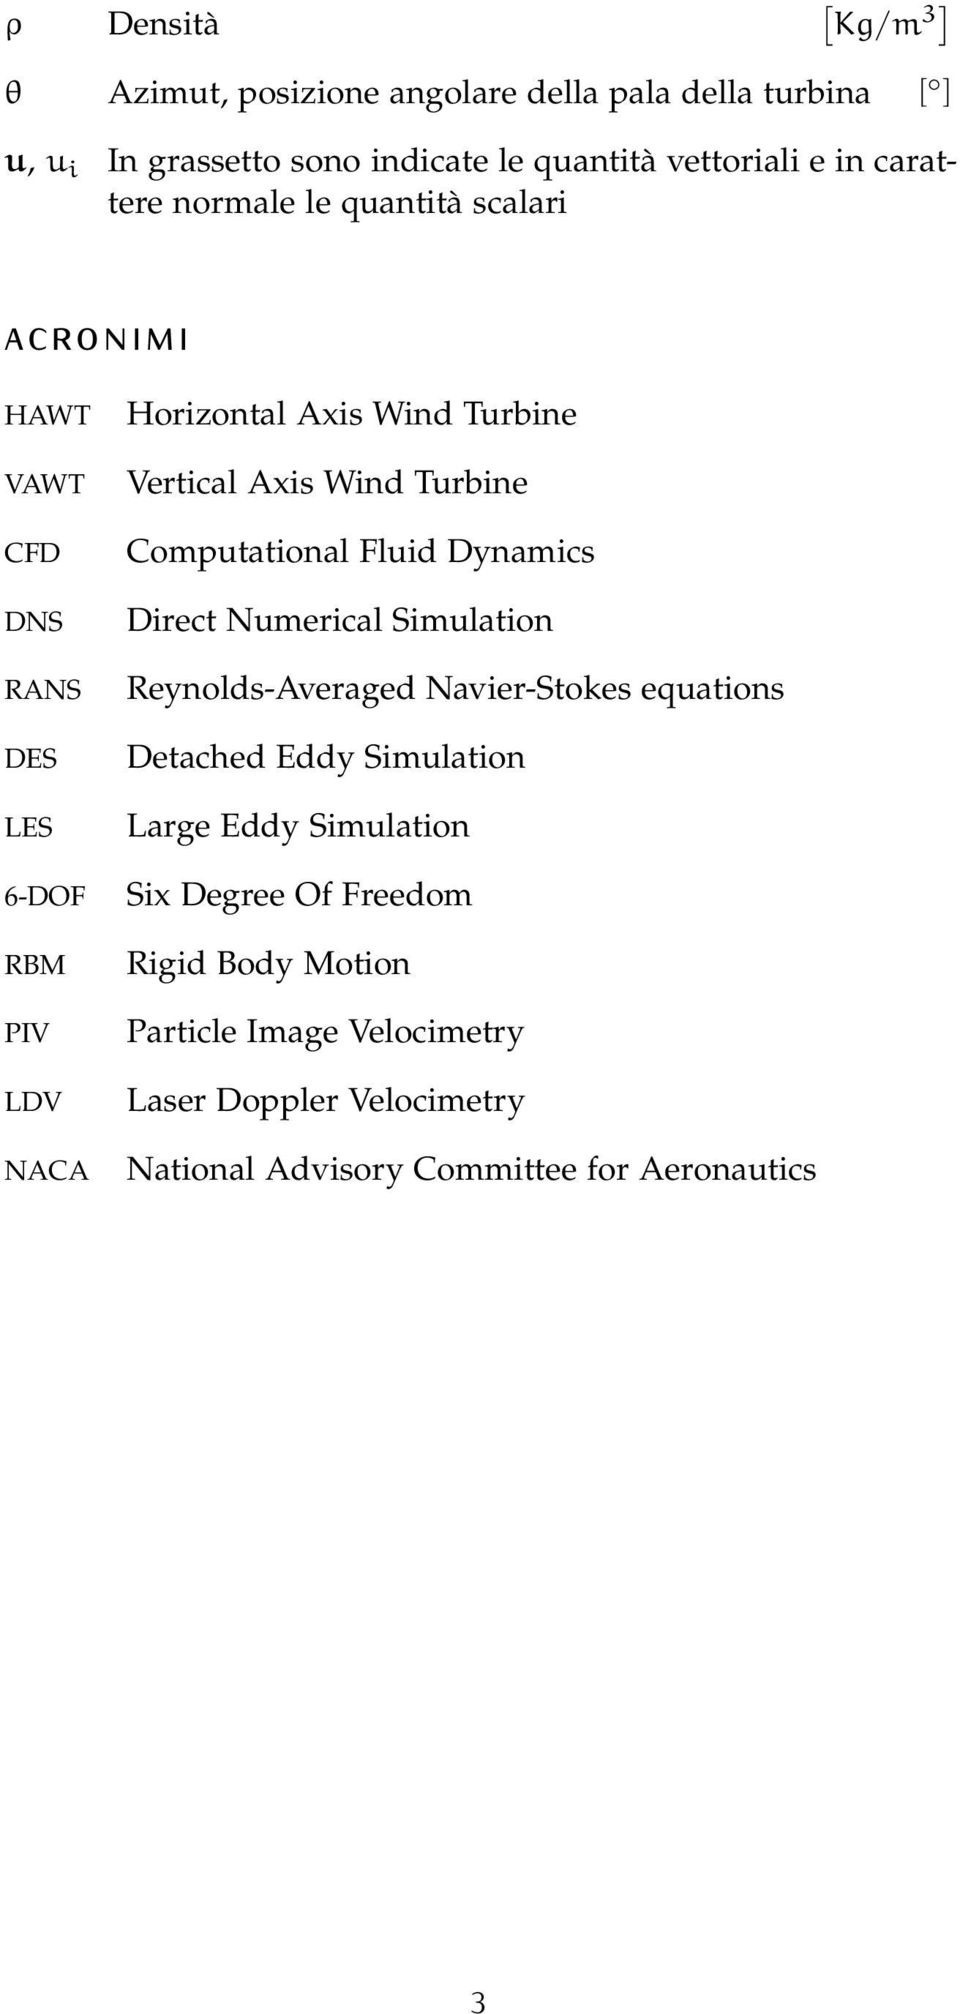 Wind Turbine Computational Fluid Dynamics Direct Numerical Simulation Reynolds-Averaged Navier-Stokes equations Detached Eddy Simulation Large